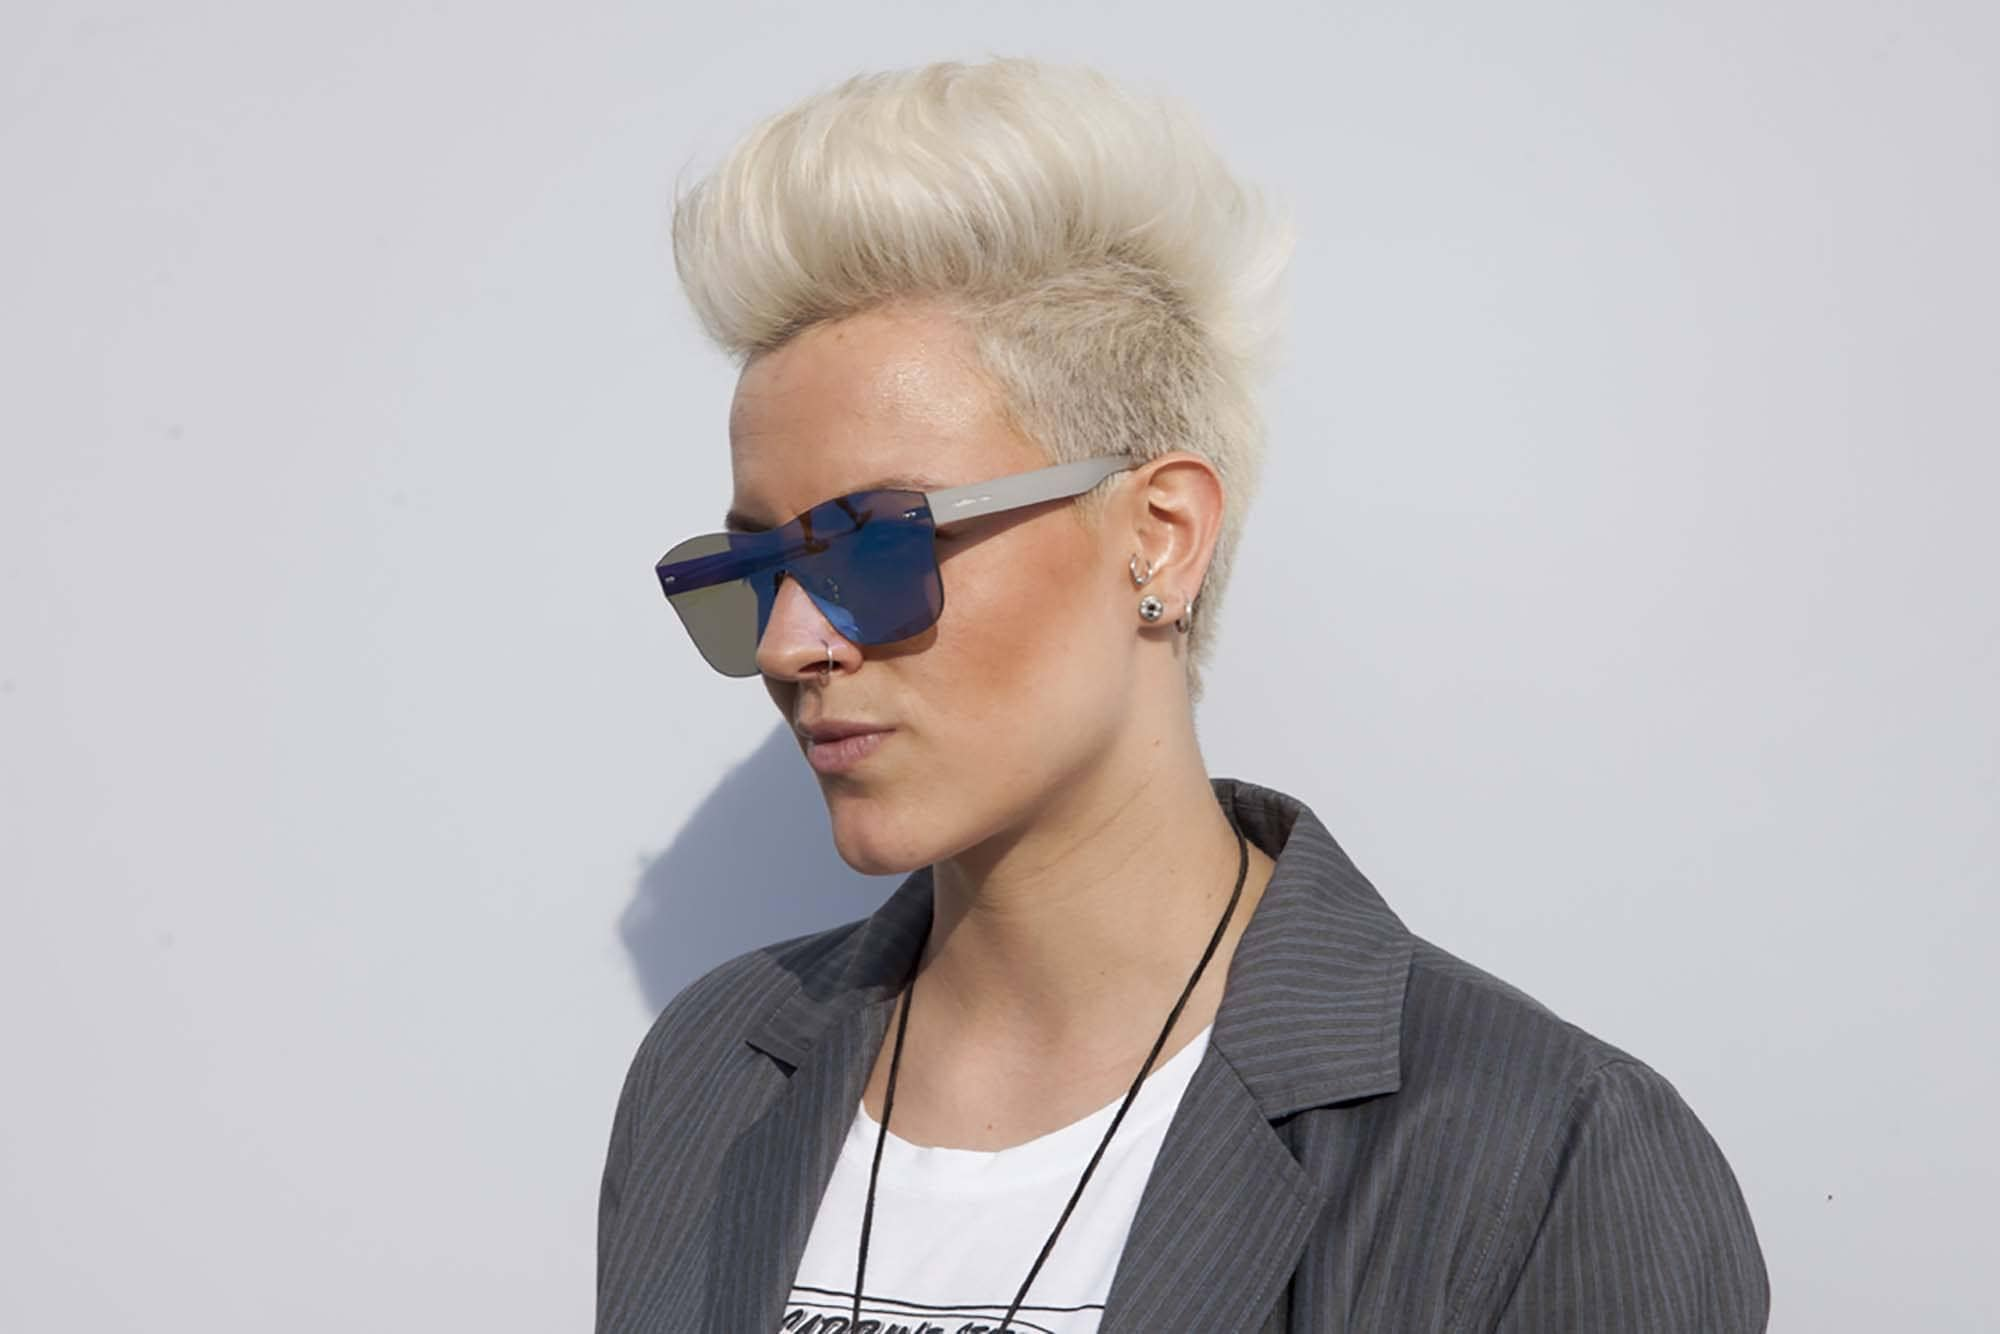 mohawk hairstyles for women in a blowout